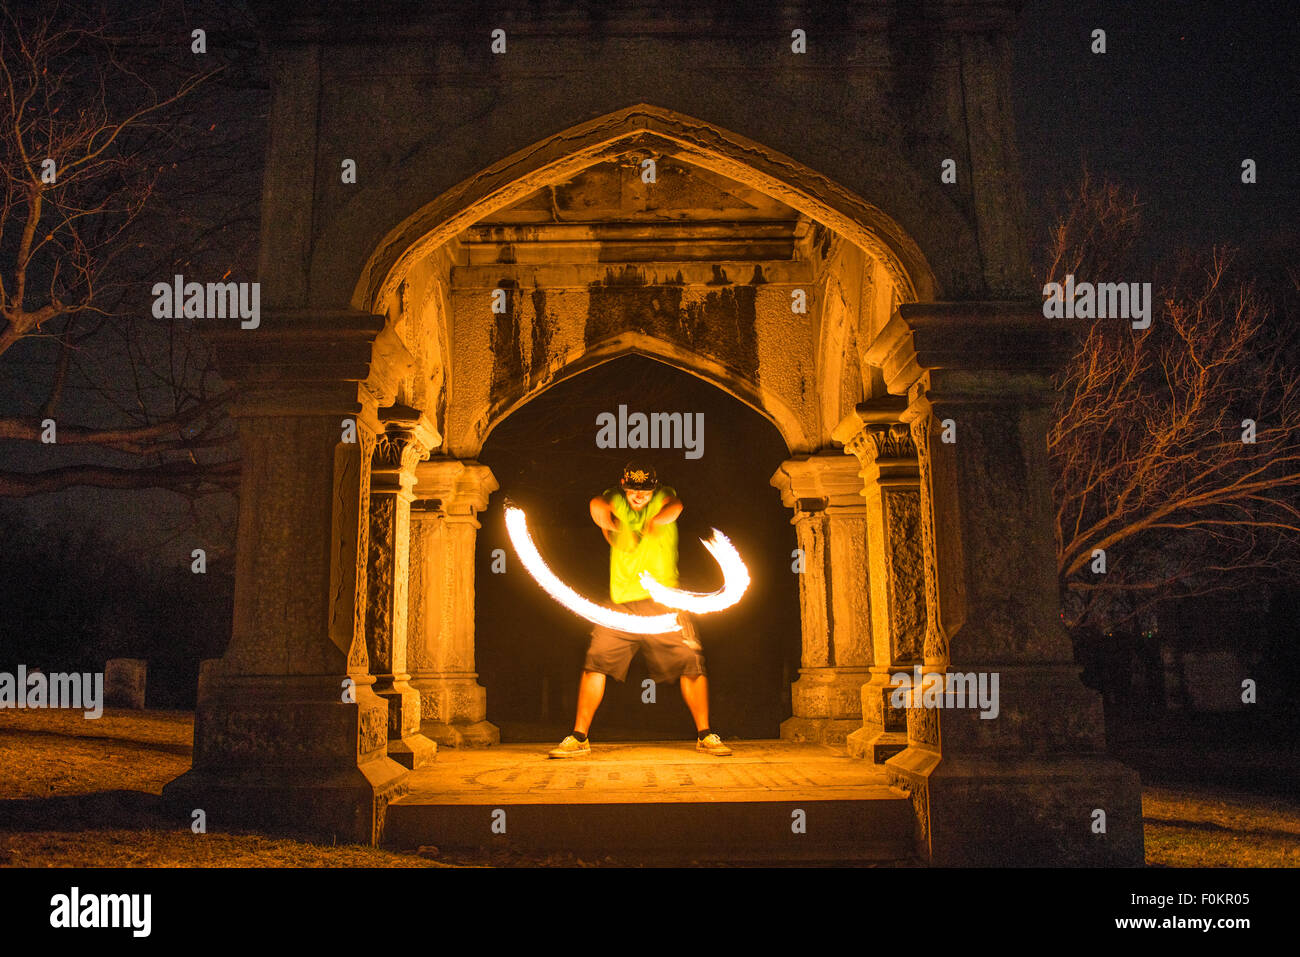 A college student spins and juggles fire in Oakwood Cemetery in Syracuse, New York. - Stock Image